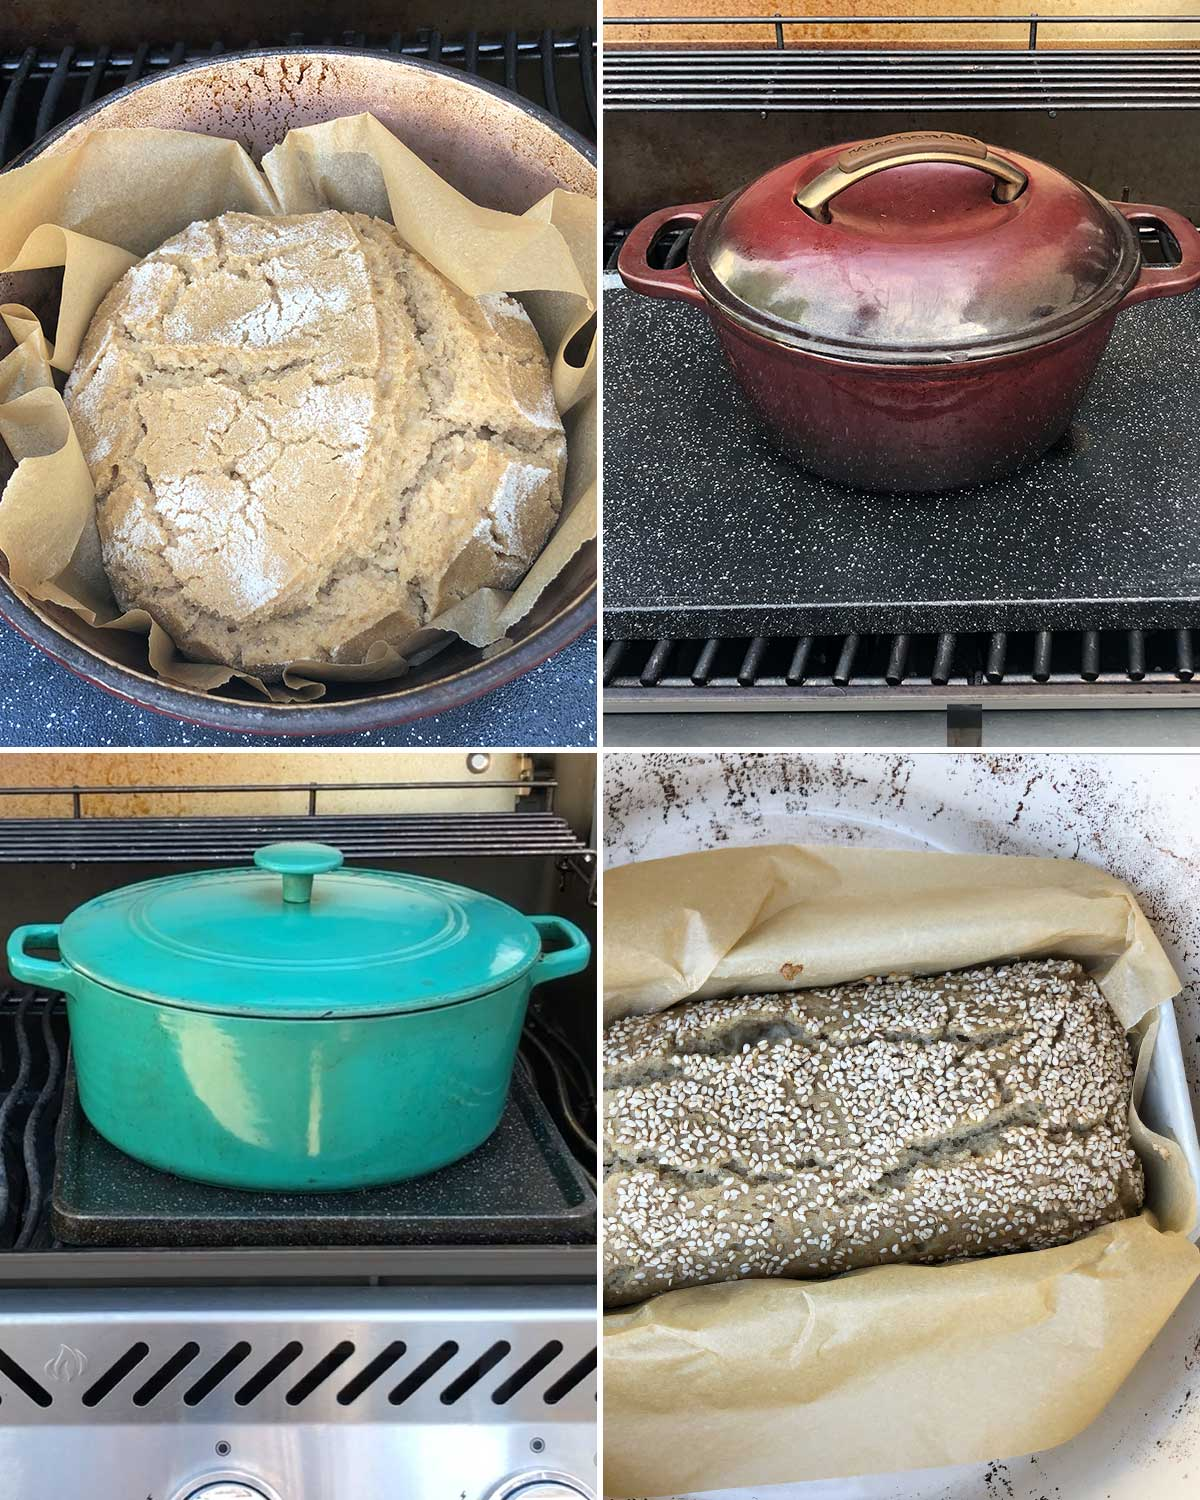 Example of Dutch oven in BBQ for bread baking.